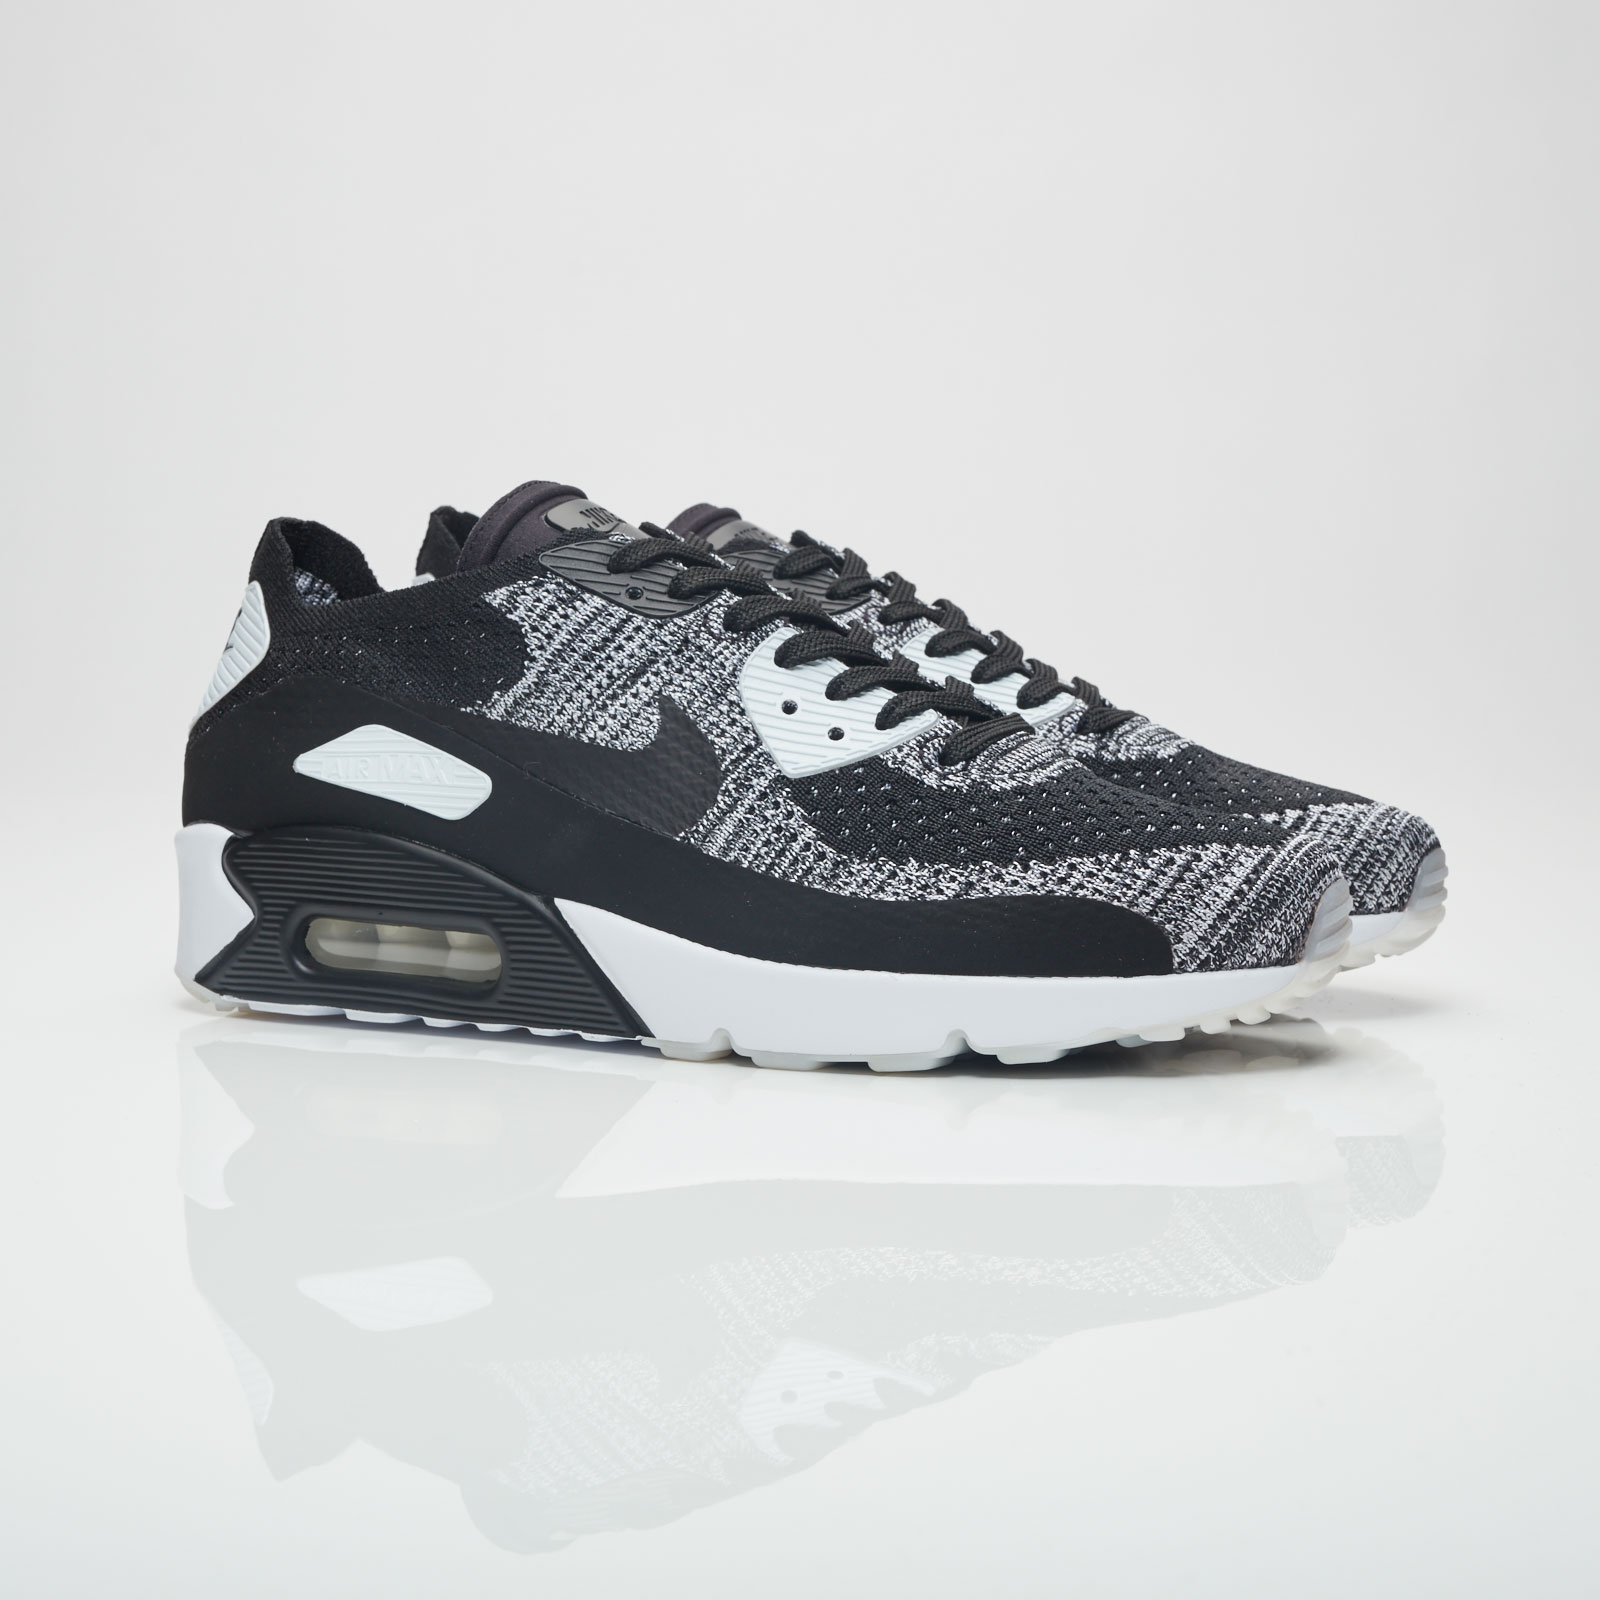 6eac056e5c792 Nike Air Max 90 Ultra 2.0 Flyknit - 875943-001 - Sneakersnstuff ...